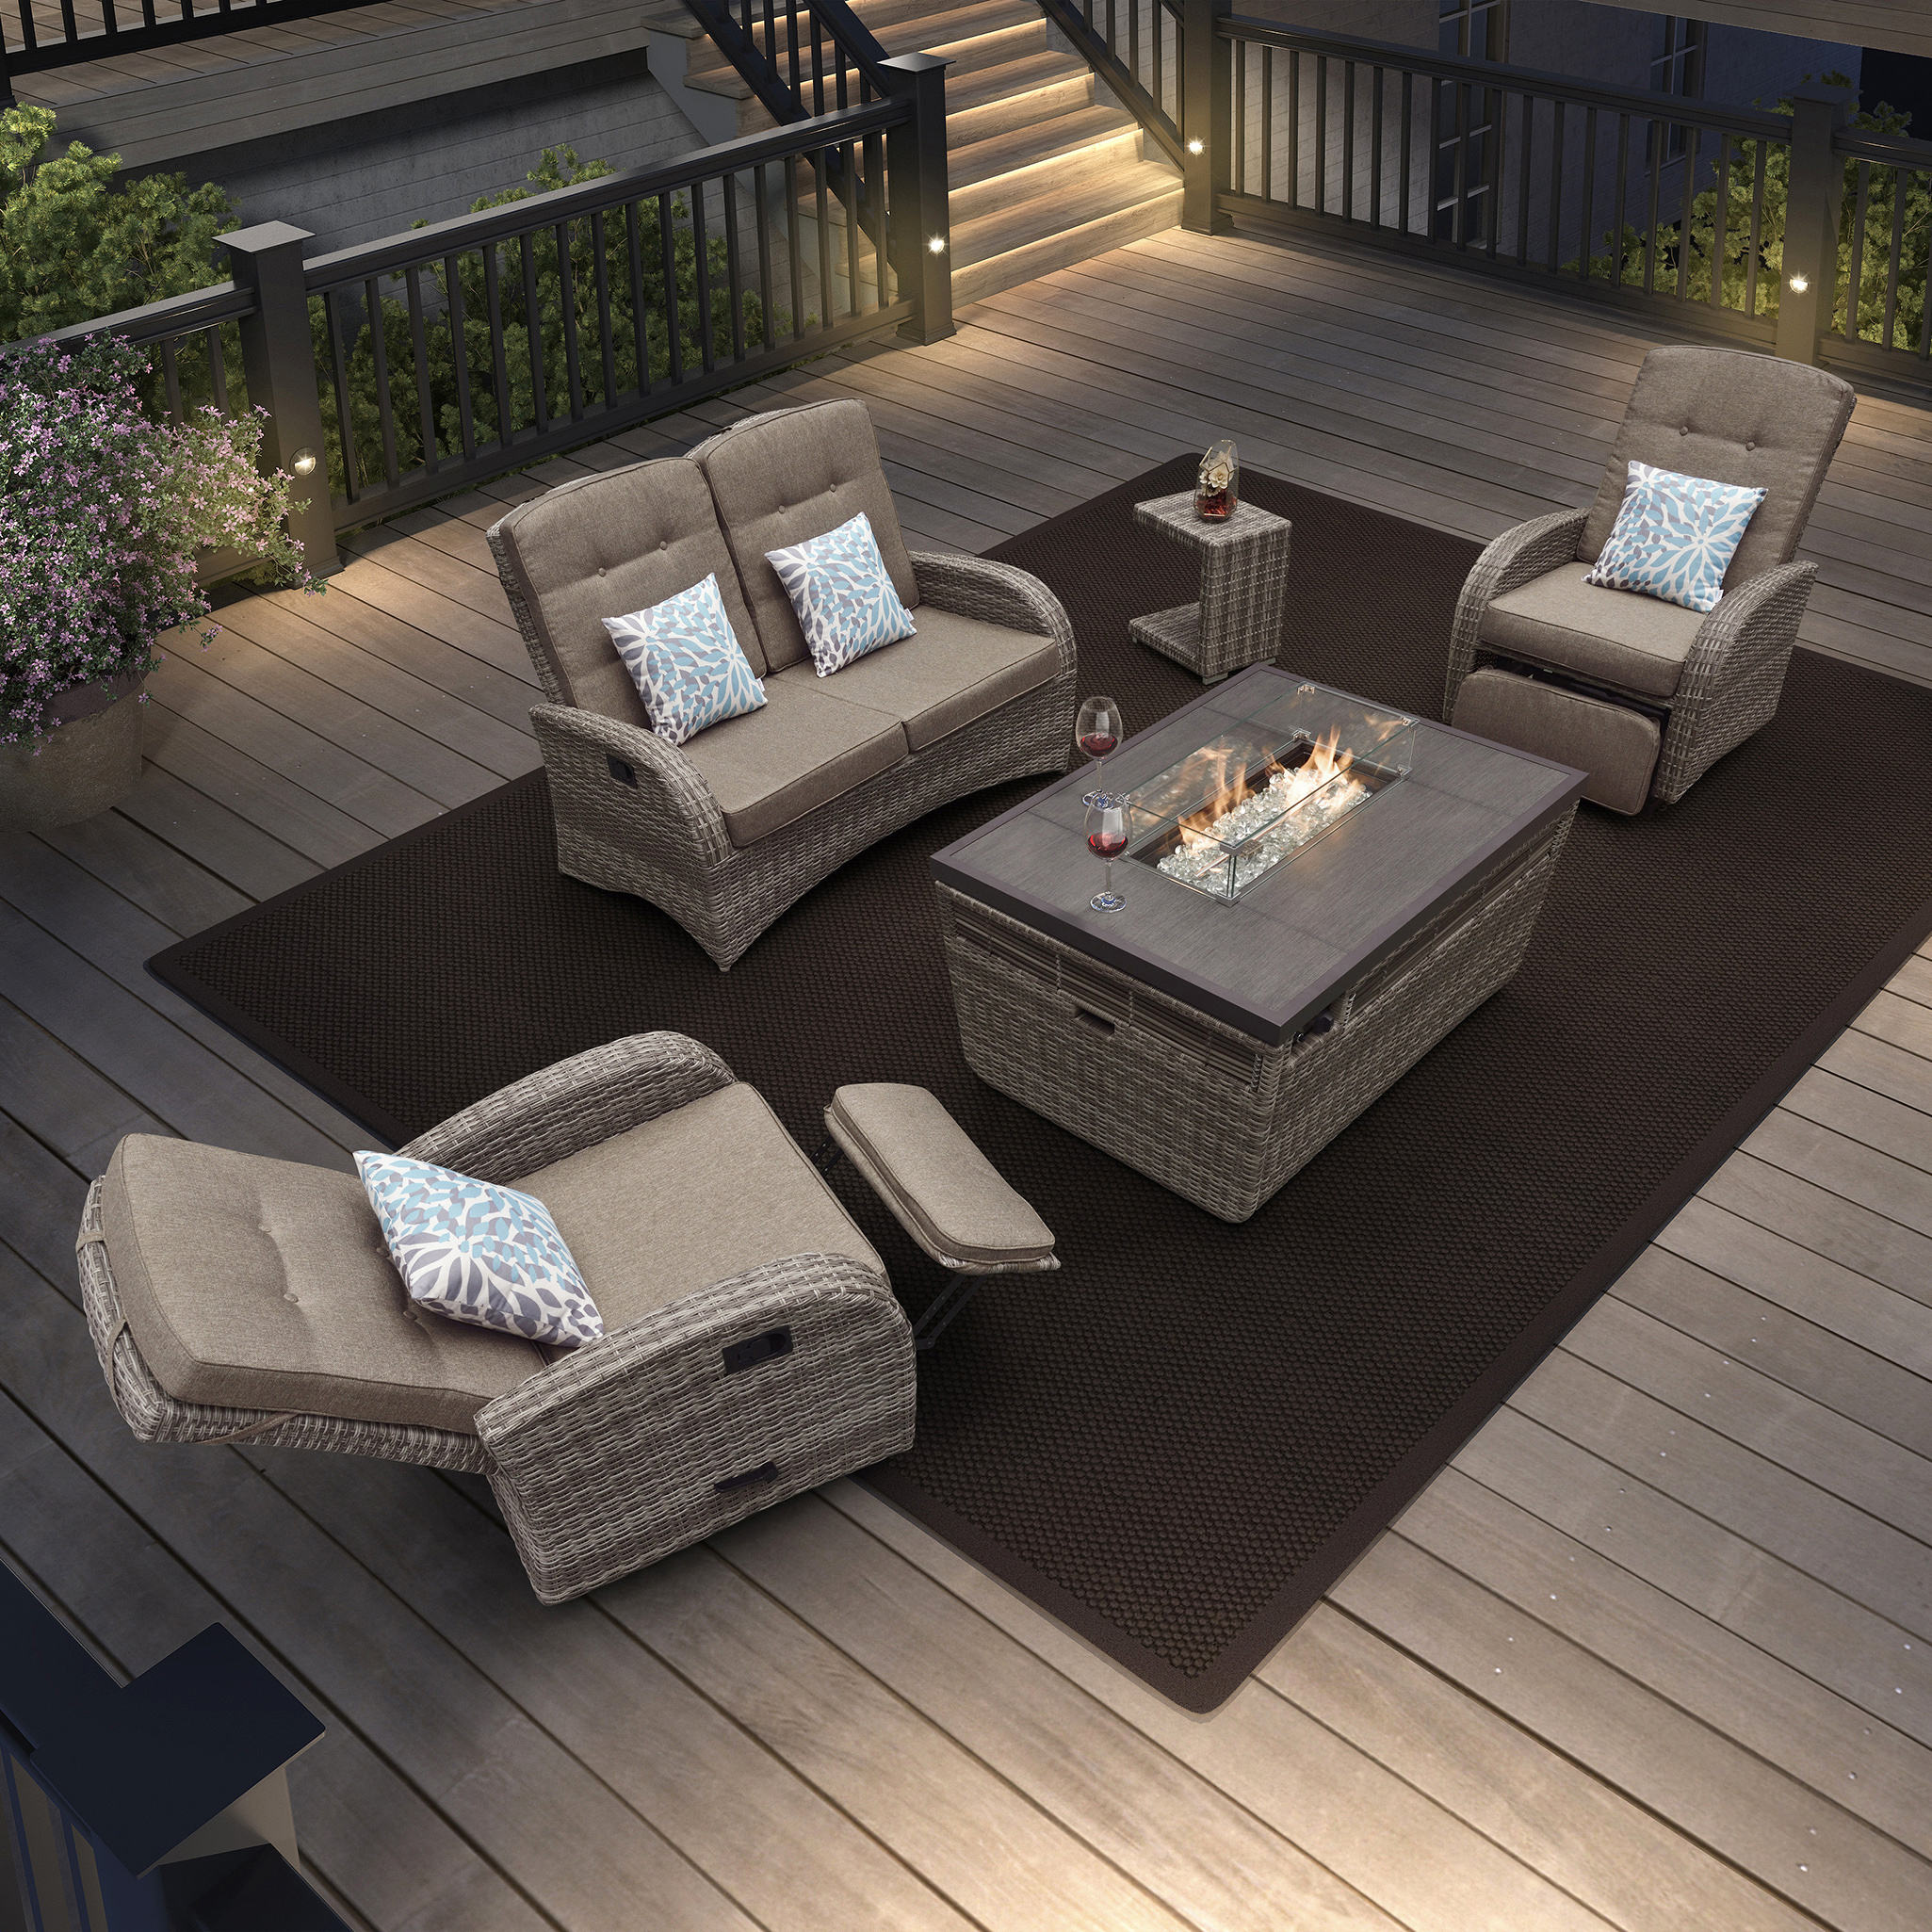 Tuin Sofa Set 4 Zits Keramische Top Patio Outdoor Gas Vuurkorf